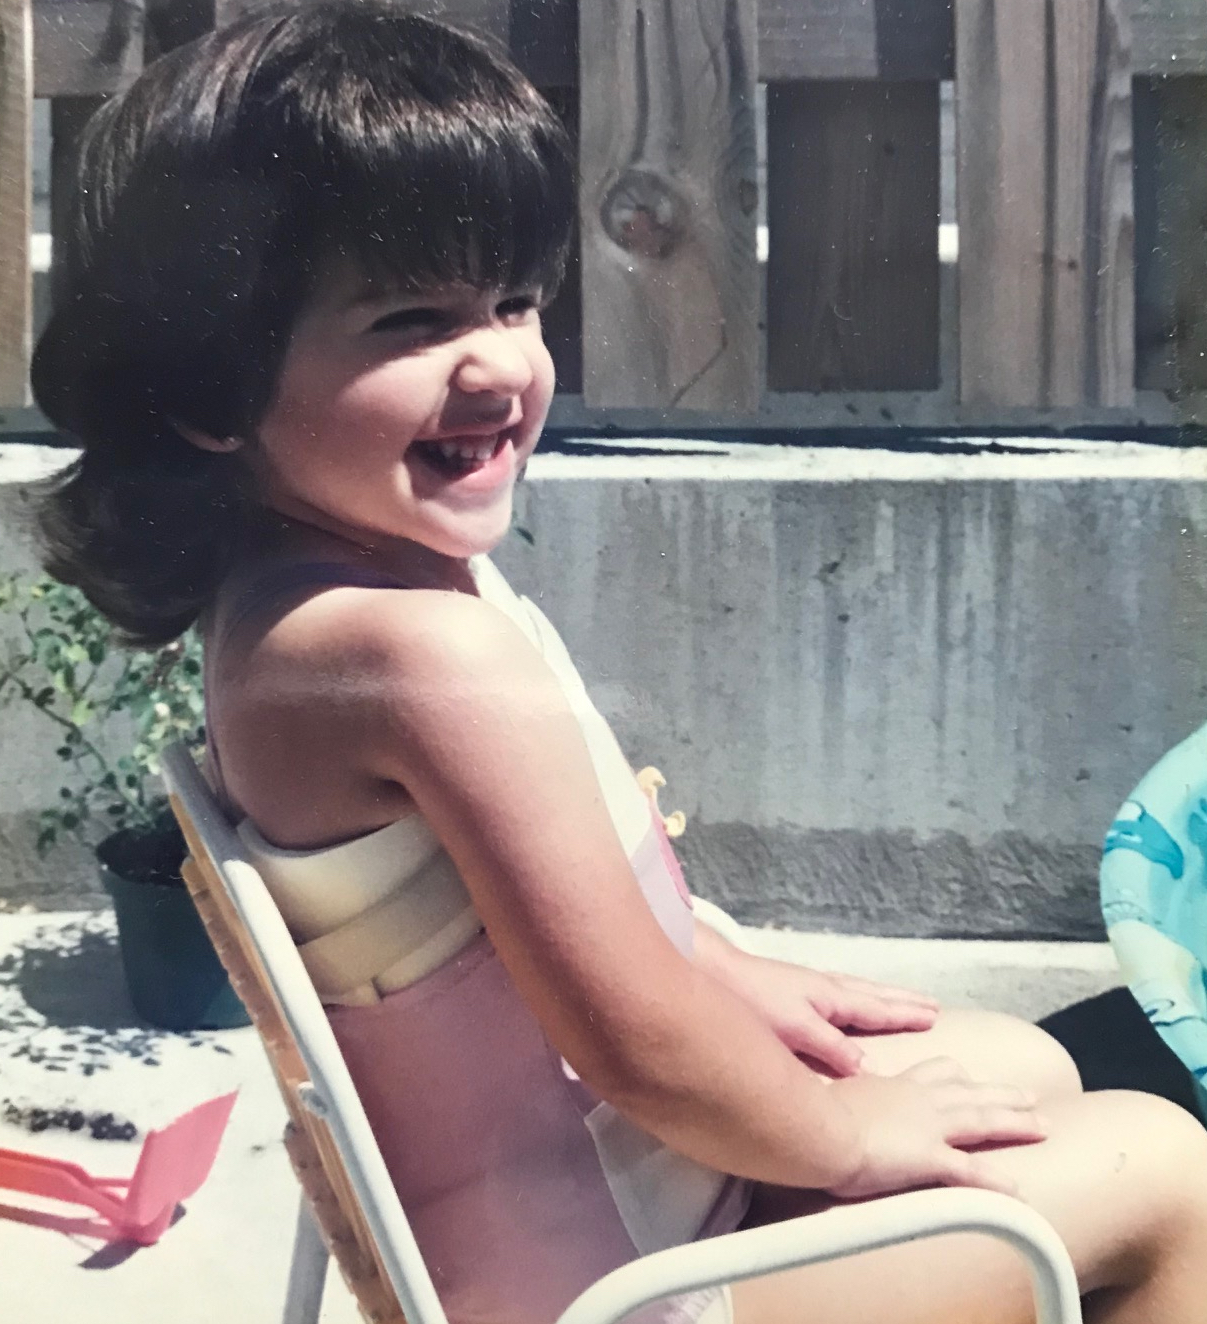 A young girl sits on a chair besides a pool. She has short dark hair and is wearing a chest brace. She is grinning.